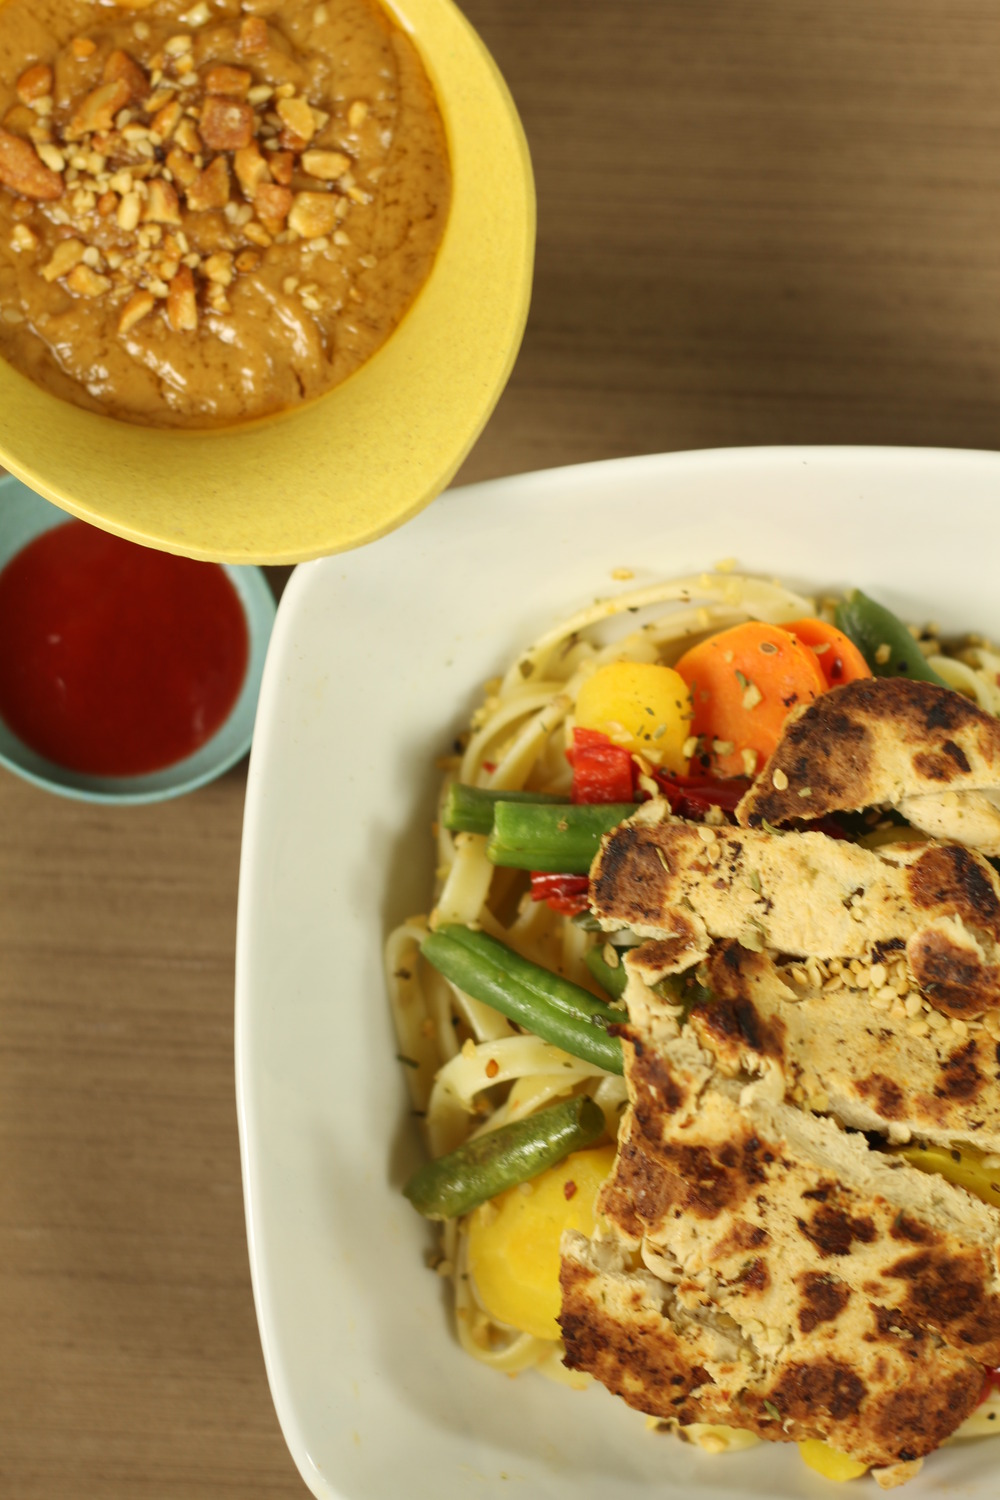 Spicy peanut sauce with noodles, vegetables, and baked chicken.